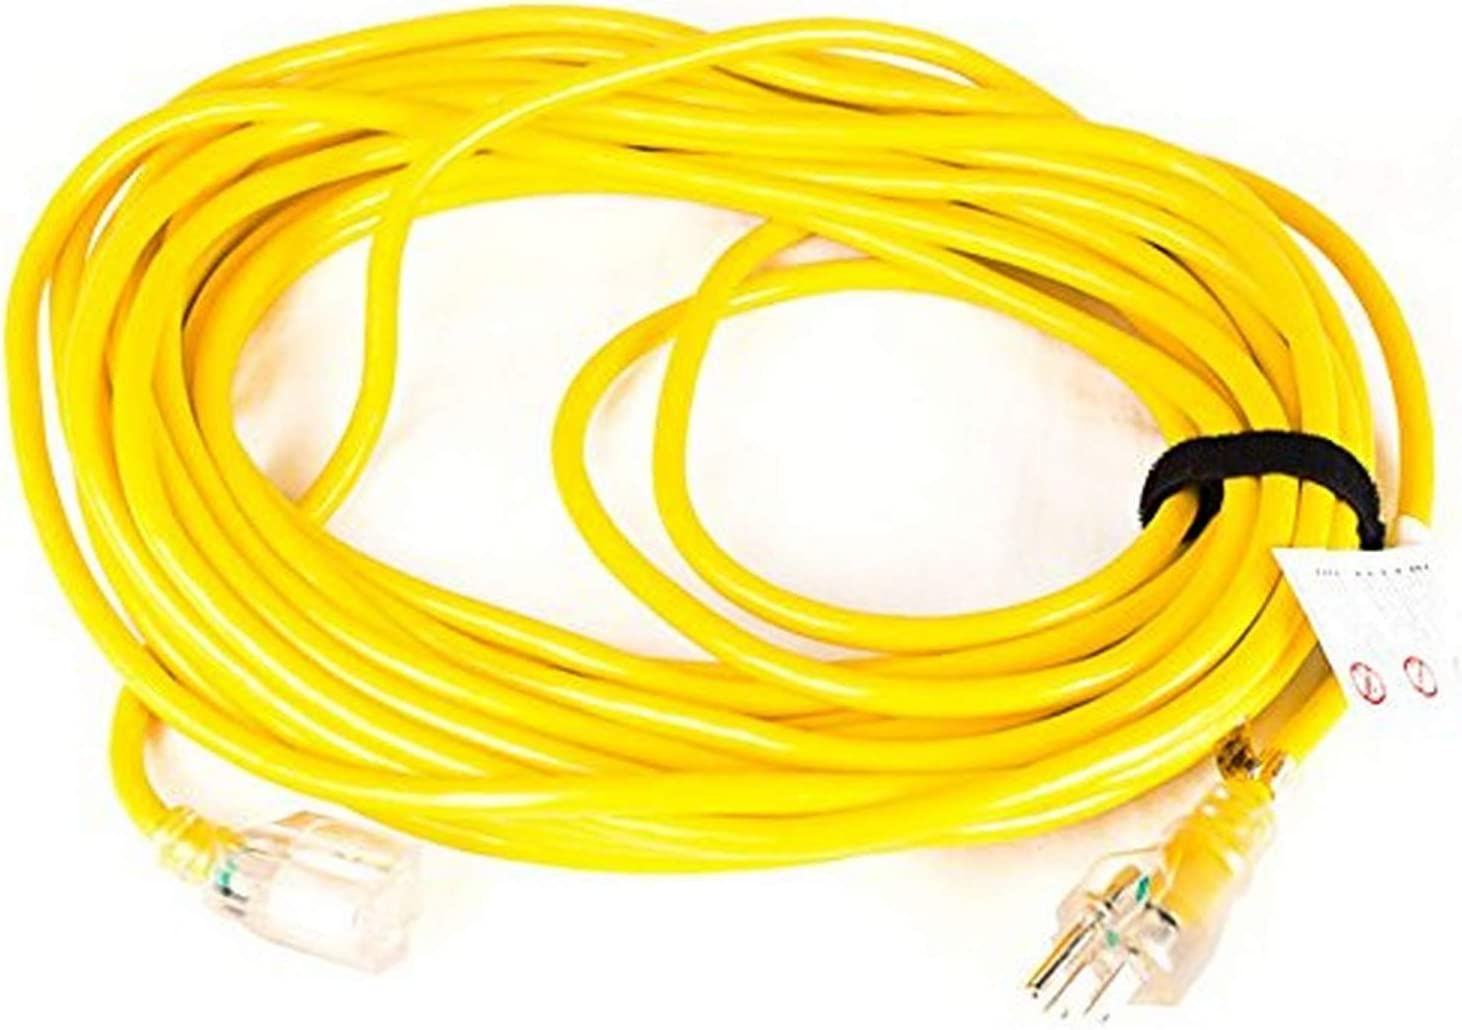 ProTeam 50' 16 (Yellow) Gauge Extension Cord